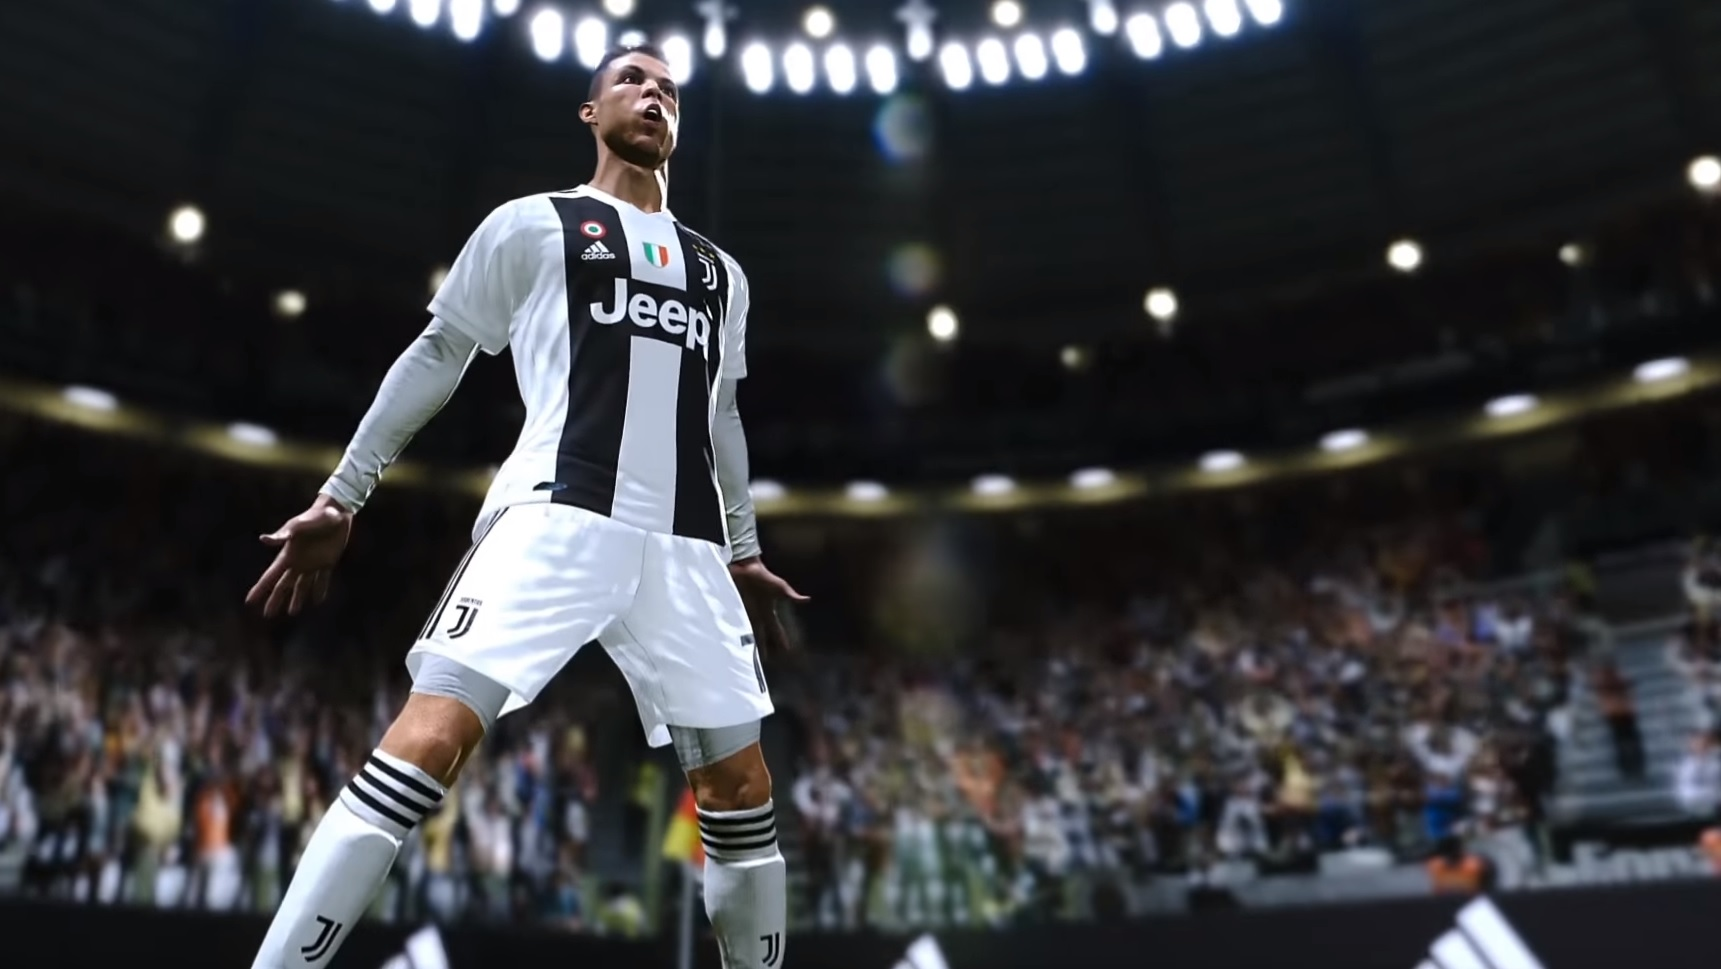 PES 2021 gets a September release date | PC Gamer